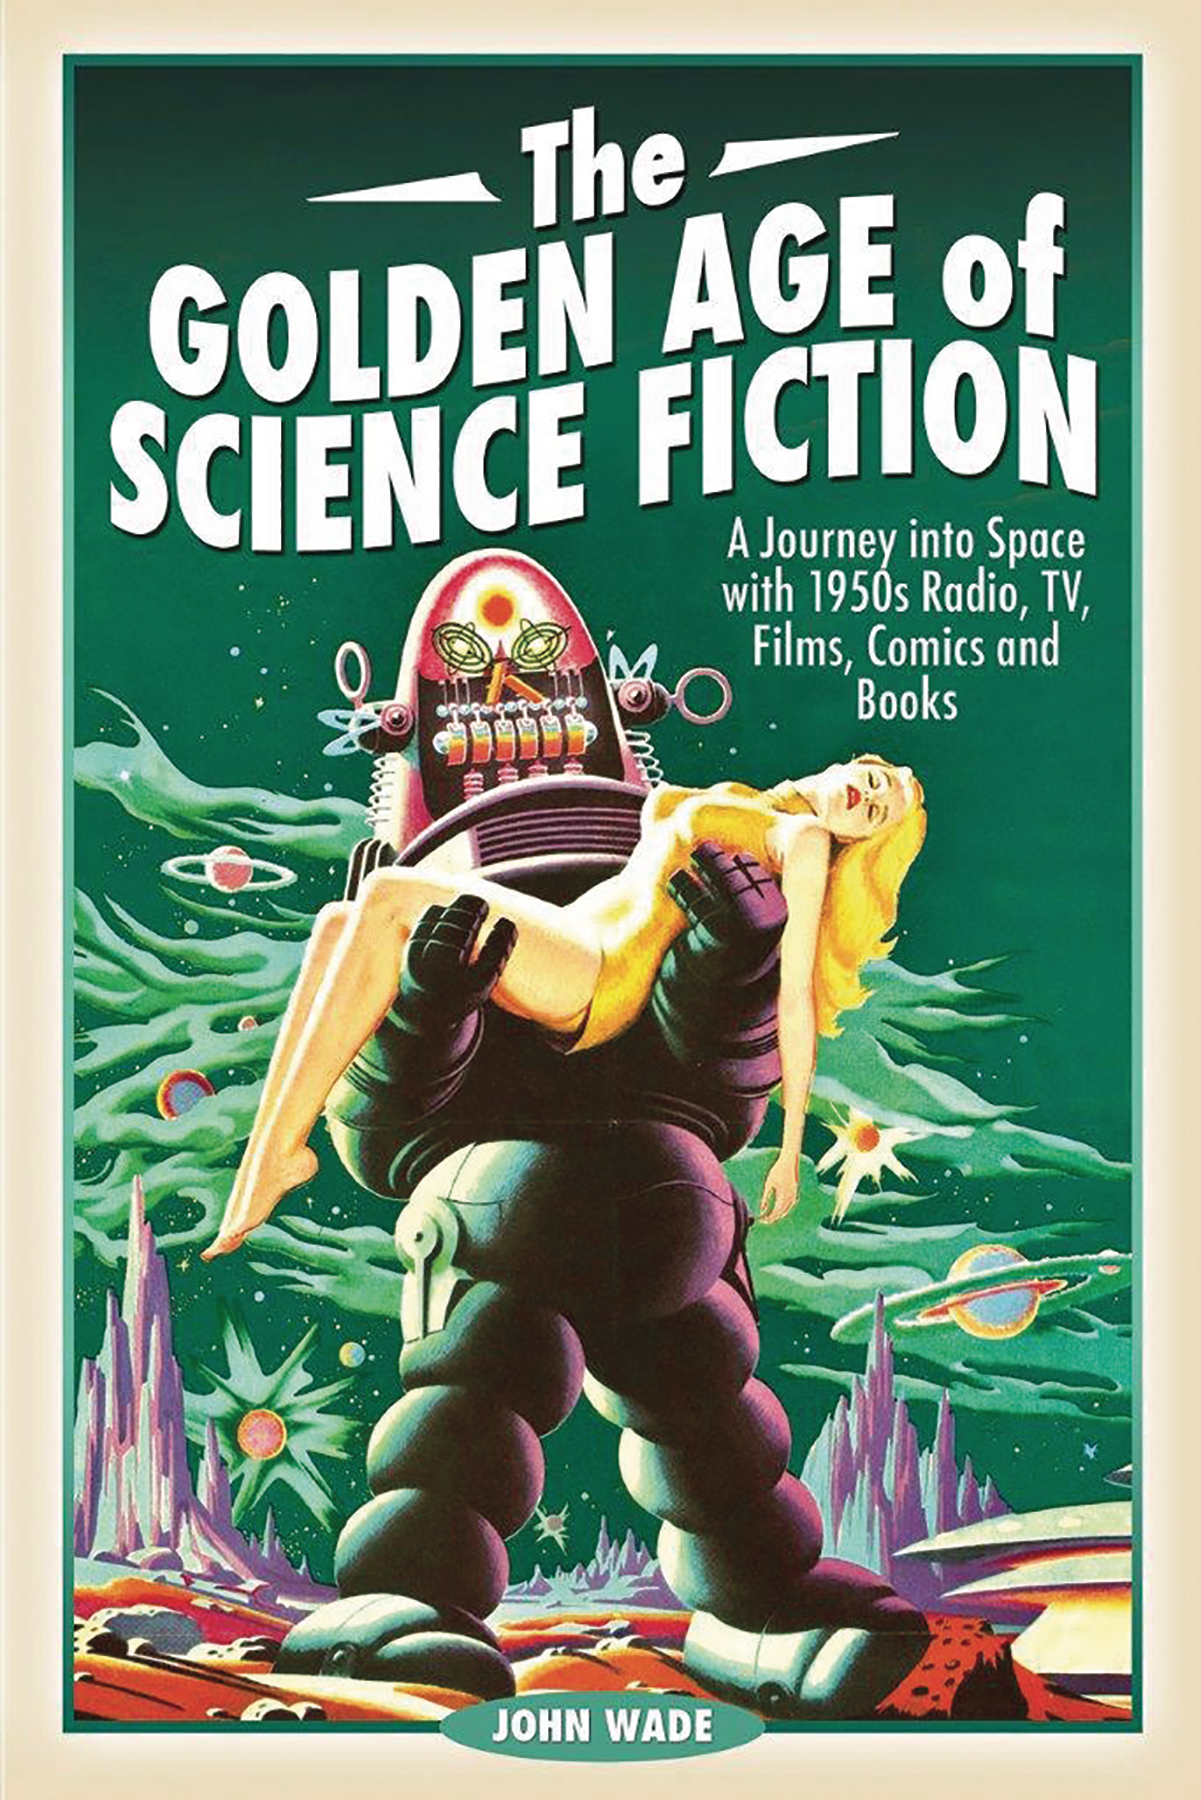 GOLDEN AGE OF SCIENCE FICTION JOURNEY INTO SPACE 1950S HC (C